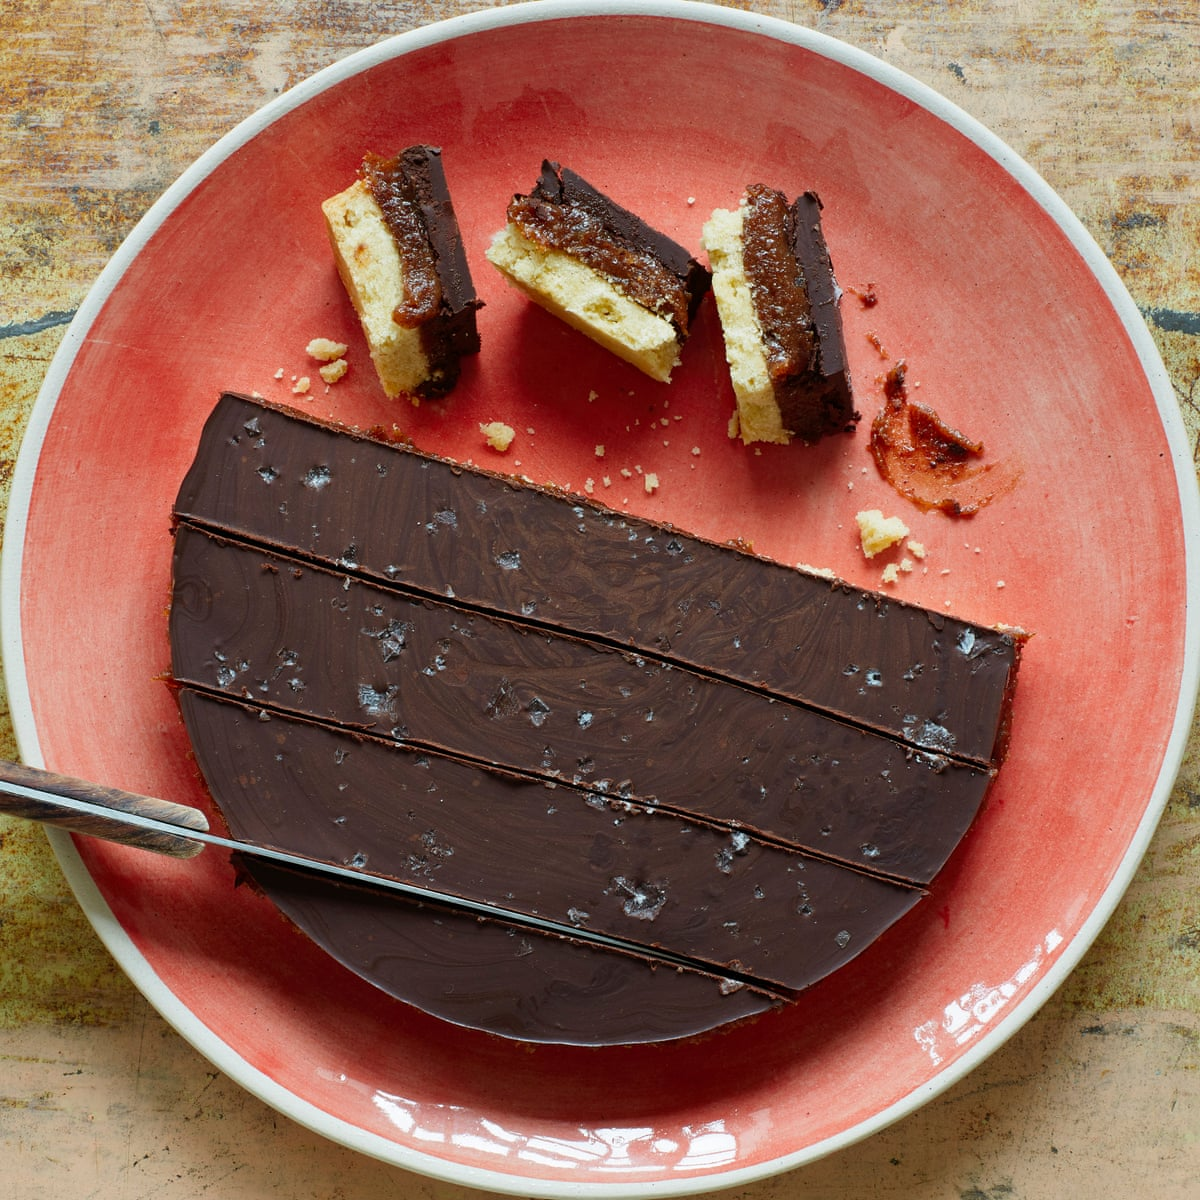 Meera Sodha S Recipe For Vegan Salted Date Caramel Biscuit Slices Food The Guardian